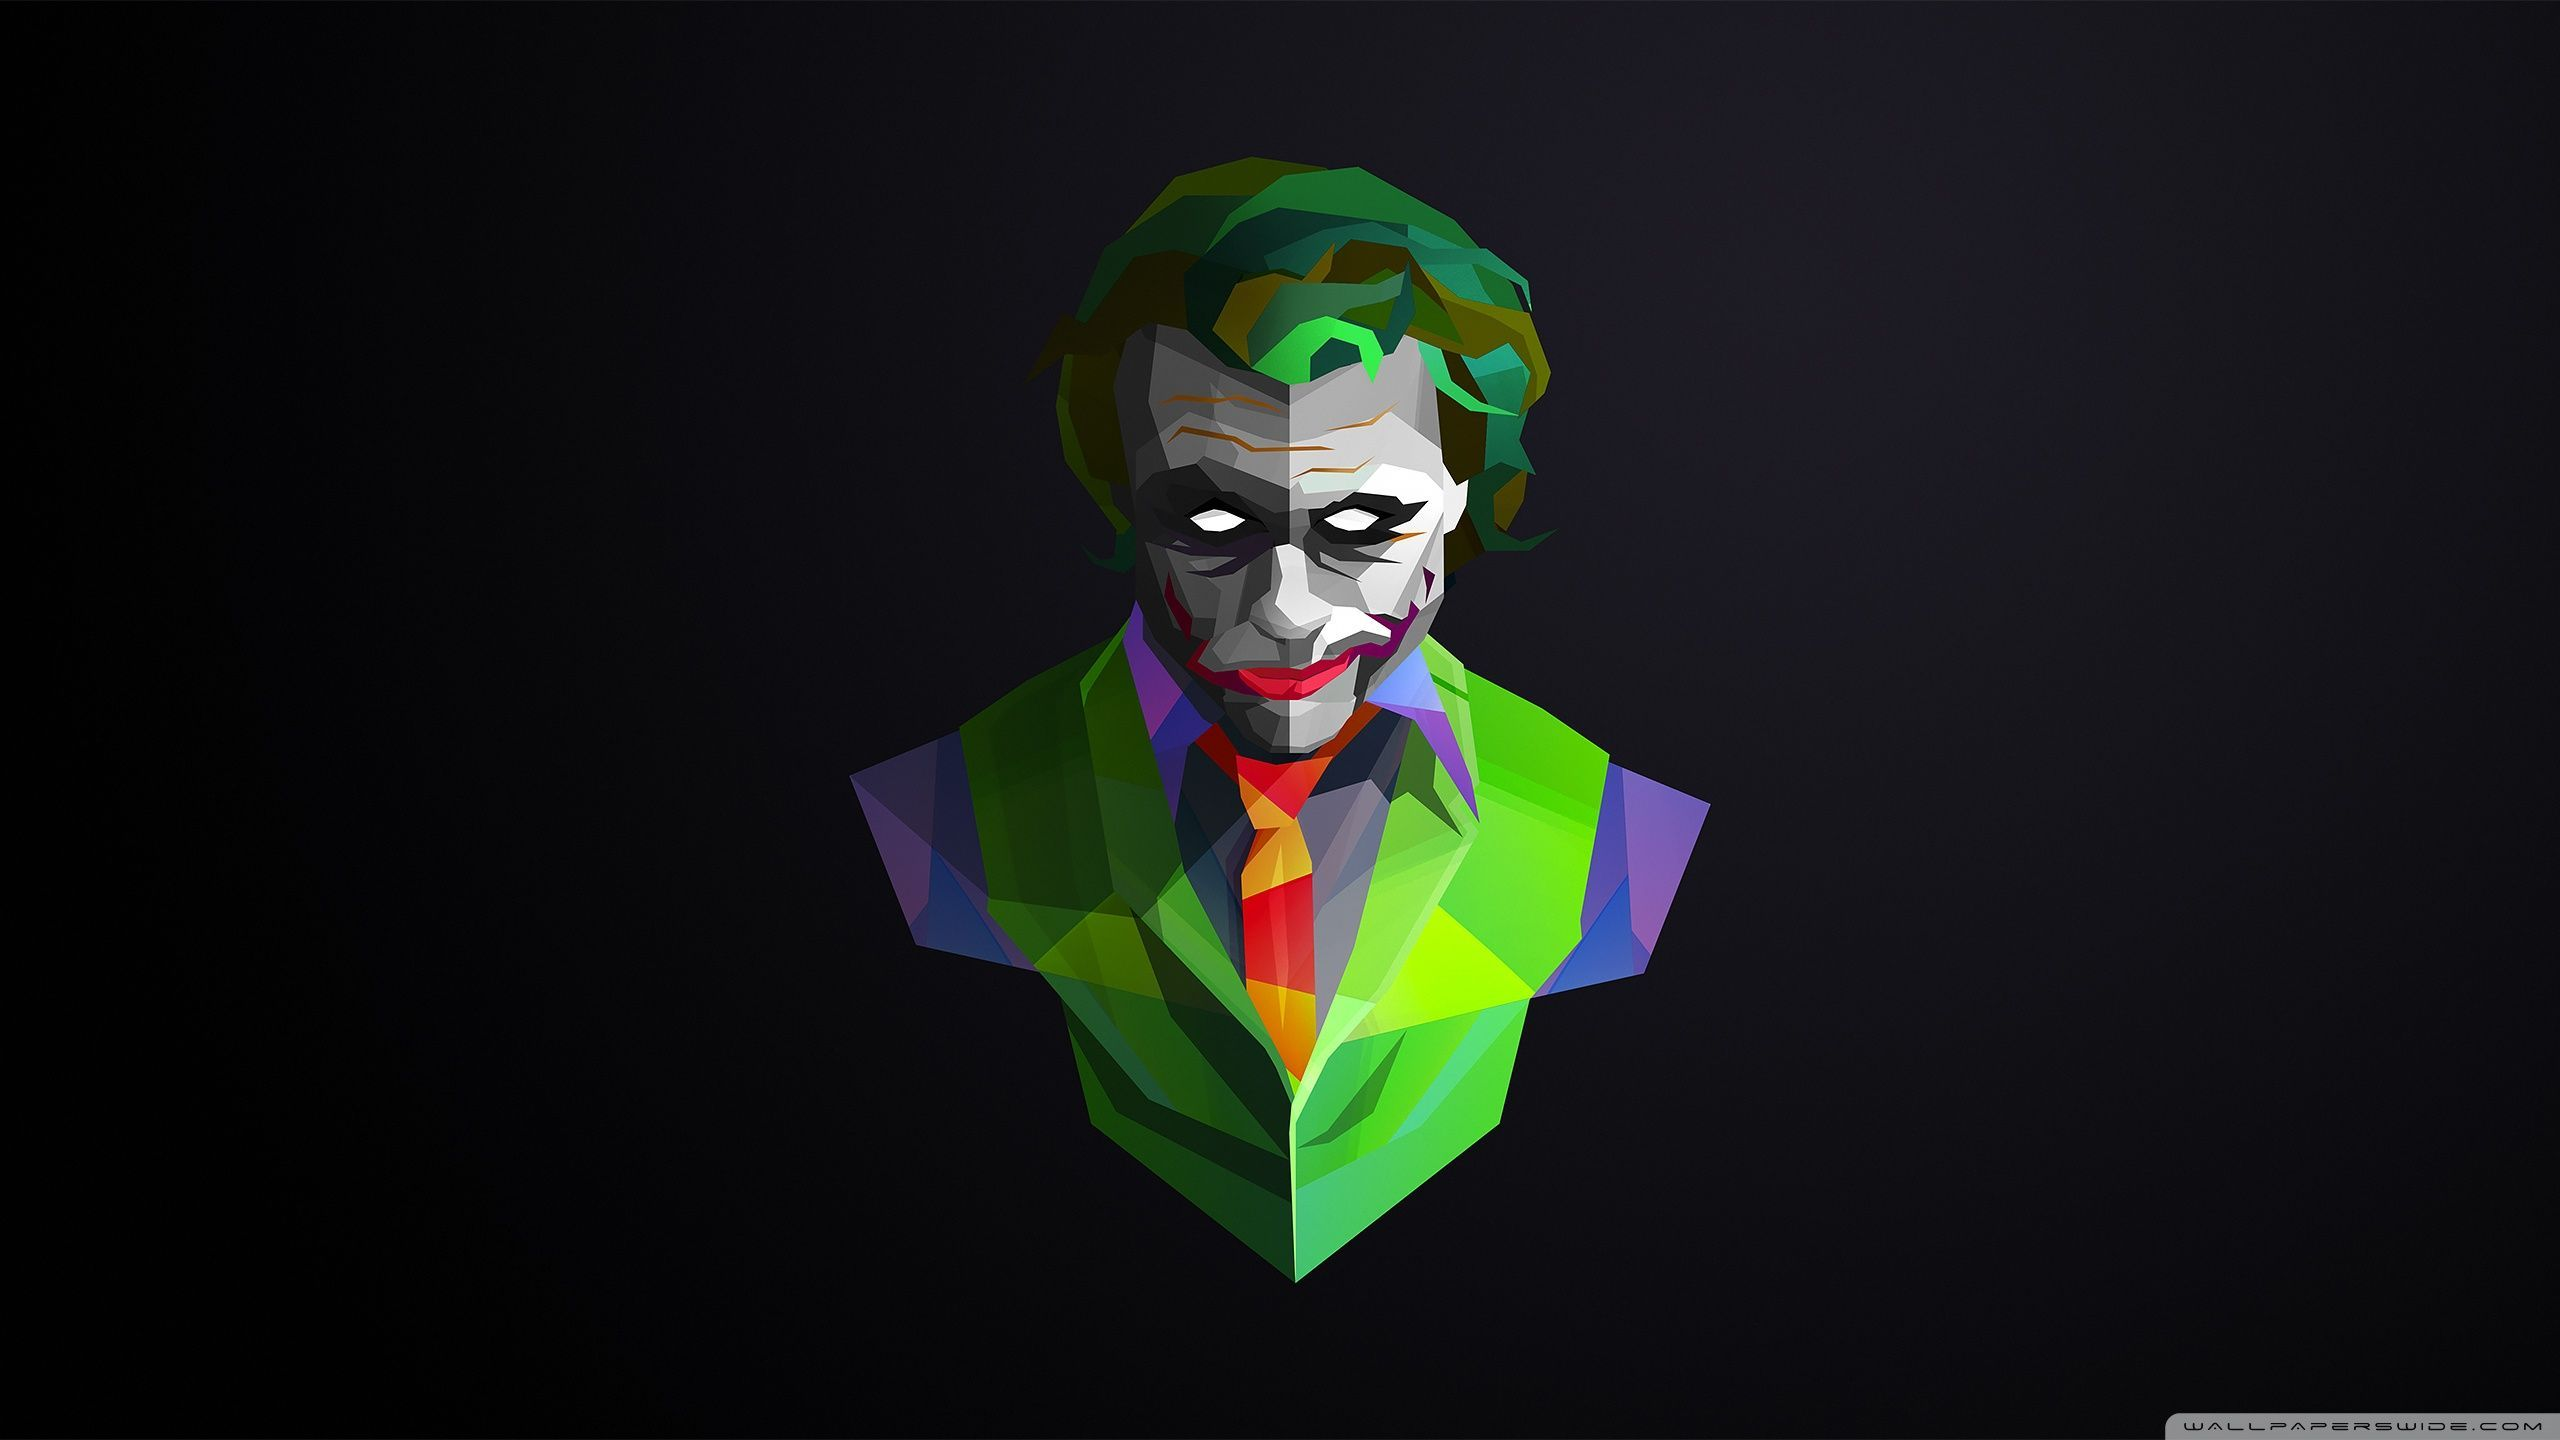 Joker Wallpapers Top Free Joker Backgrounds Jokerwallpapers